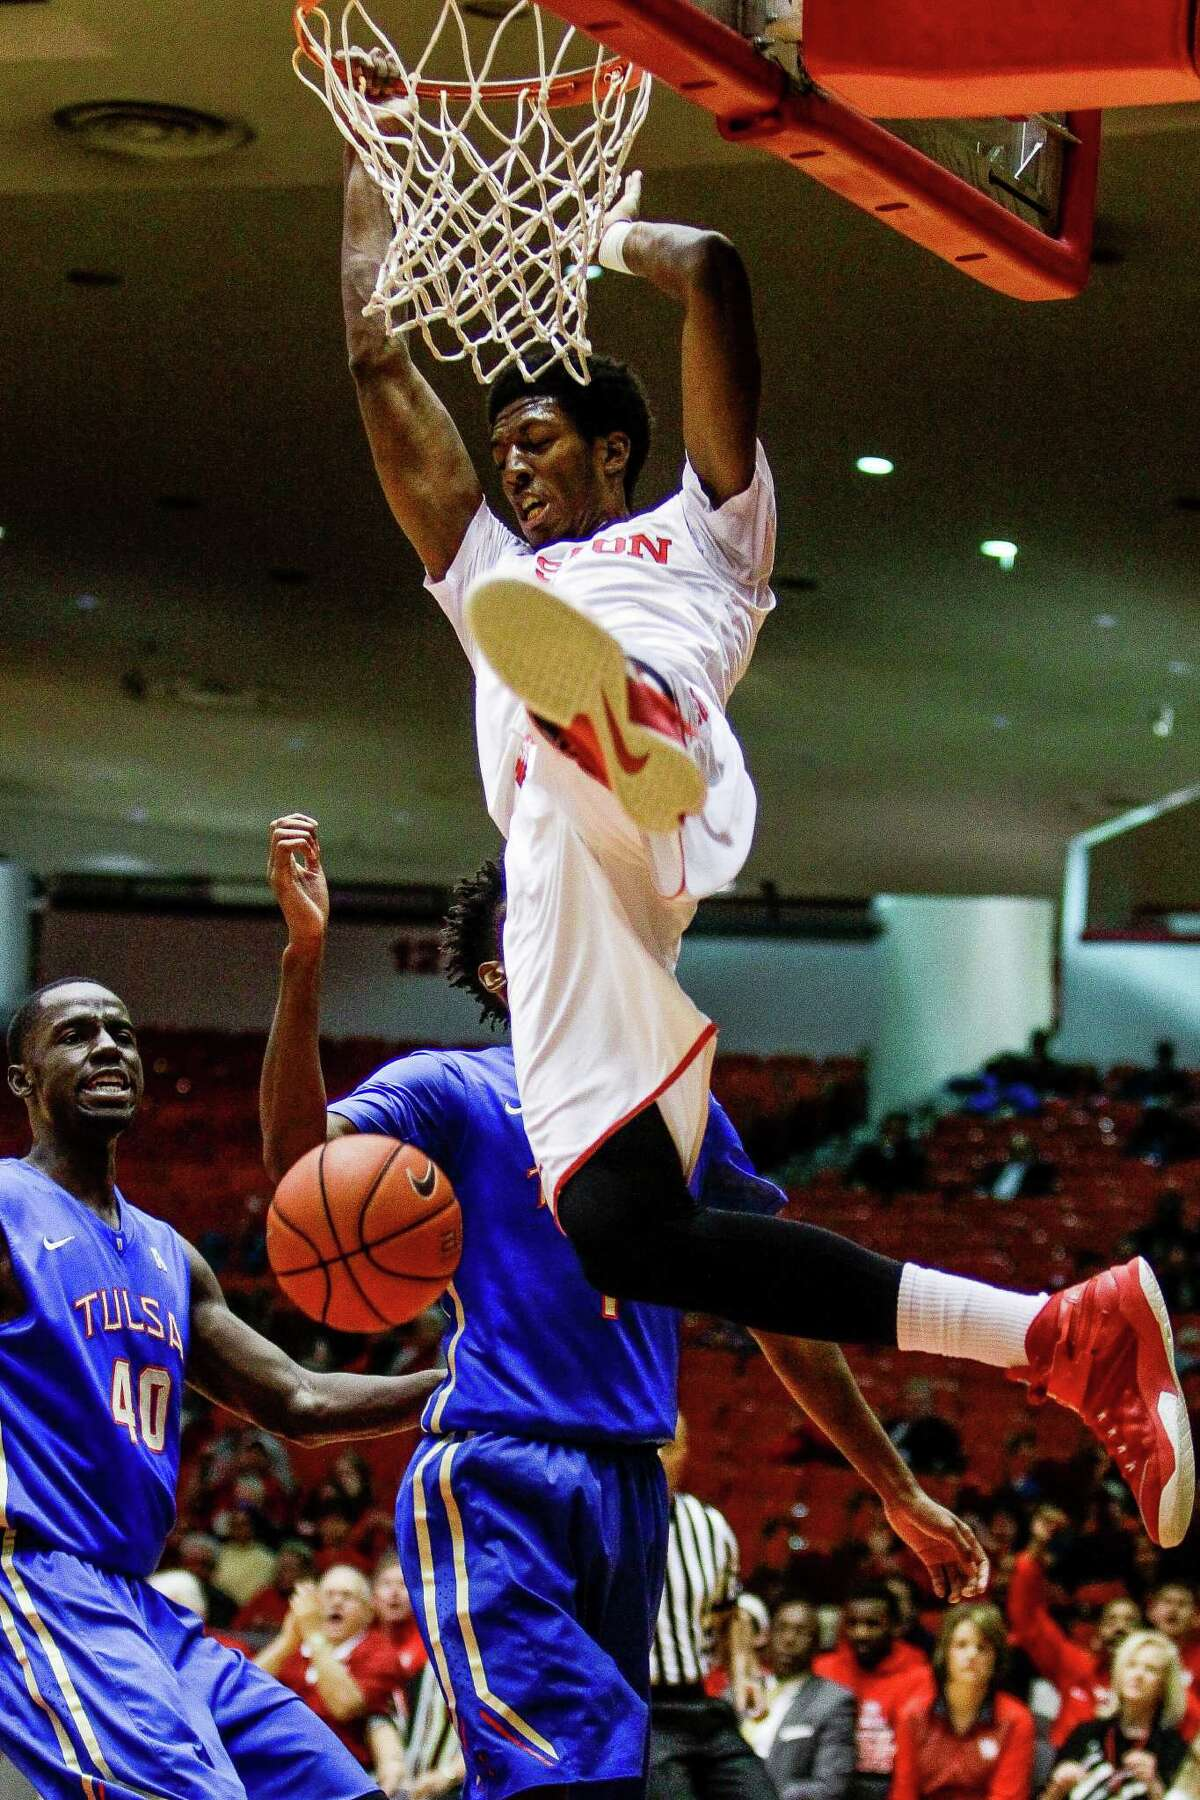 Houston Cougars forward Danrad Knowles (0) swings off the hoop after a dunk as the Houston Cougars take on the Tulsa Golden Hurricane at Hoffheinz Pavillion Wednesday, Jan. 27, 2016, in Houston.